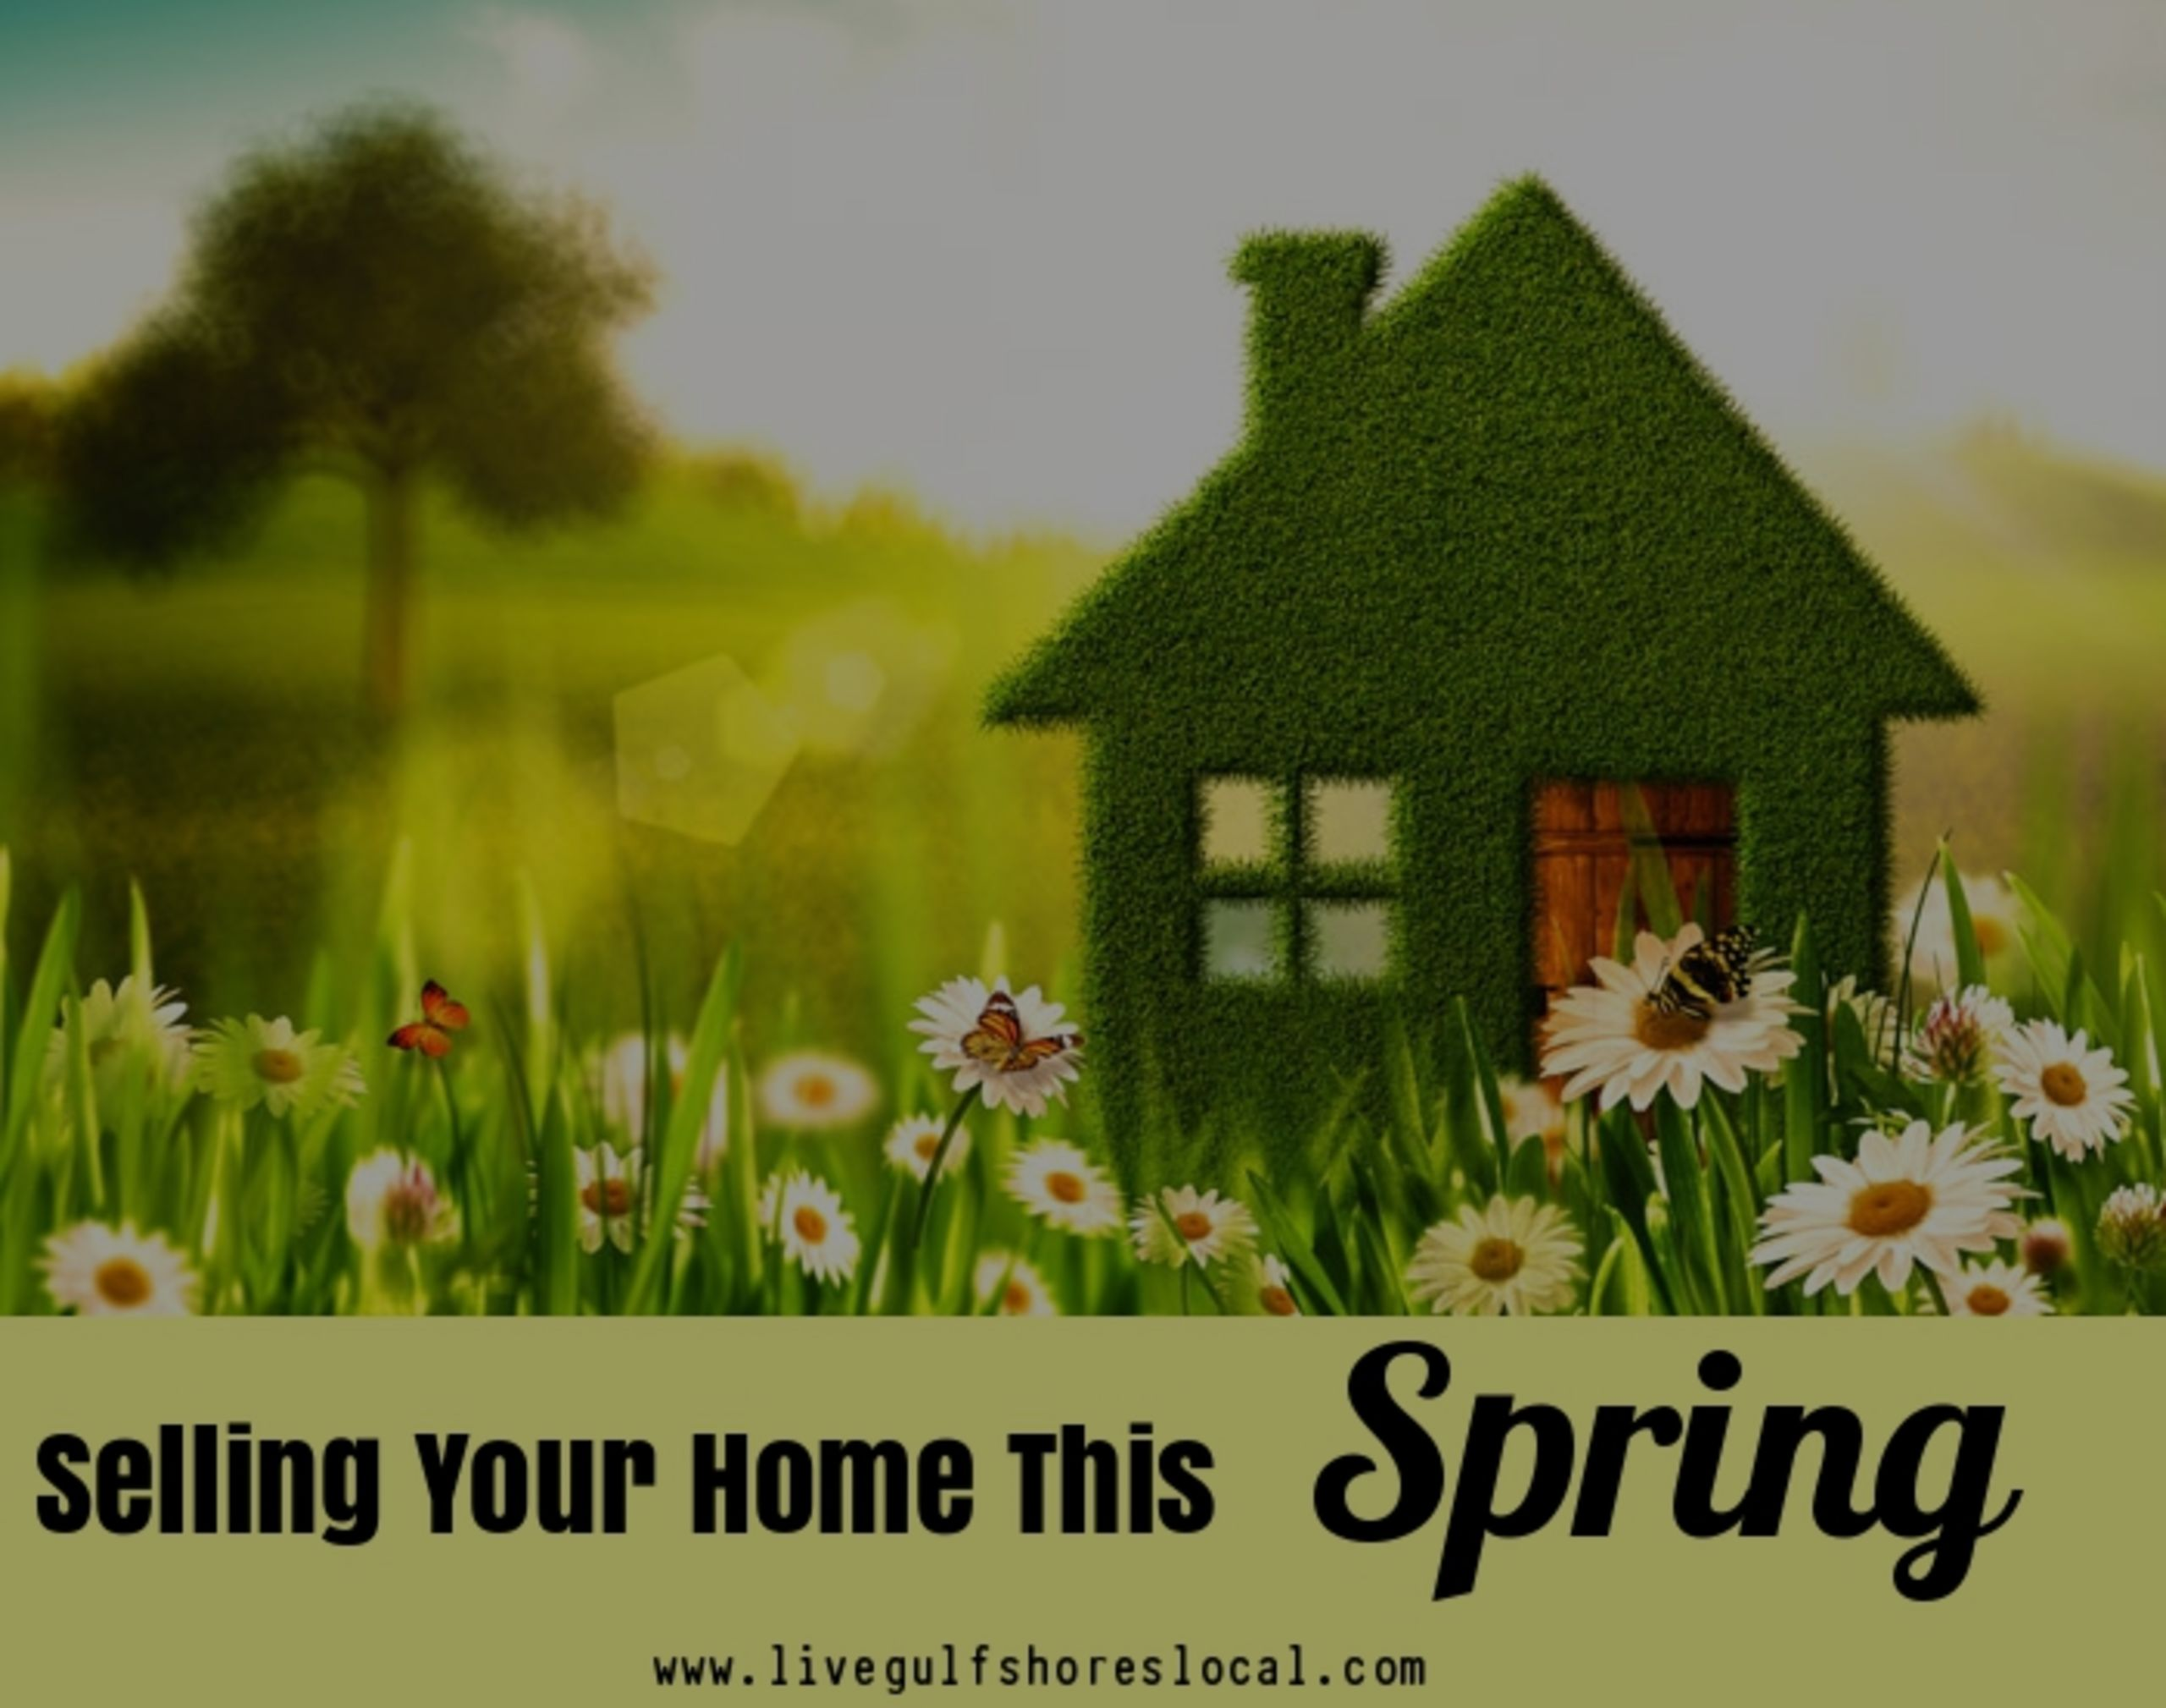 40 Plus Tips for Selling Your Home This Spring